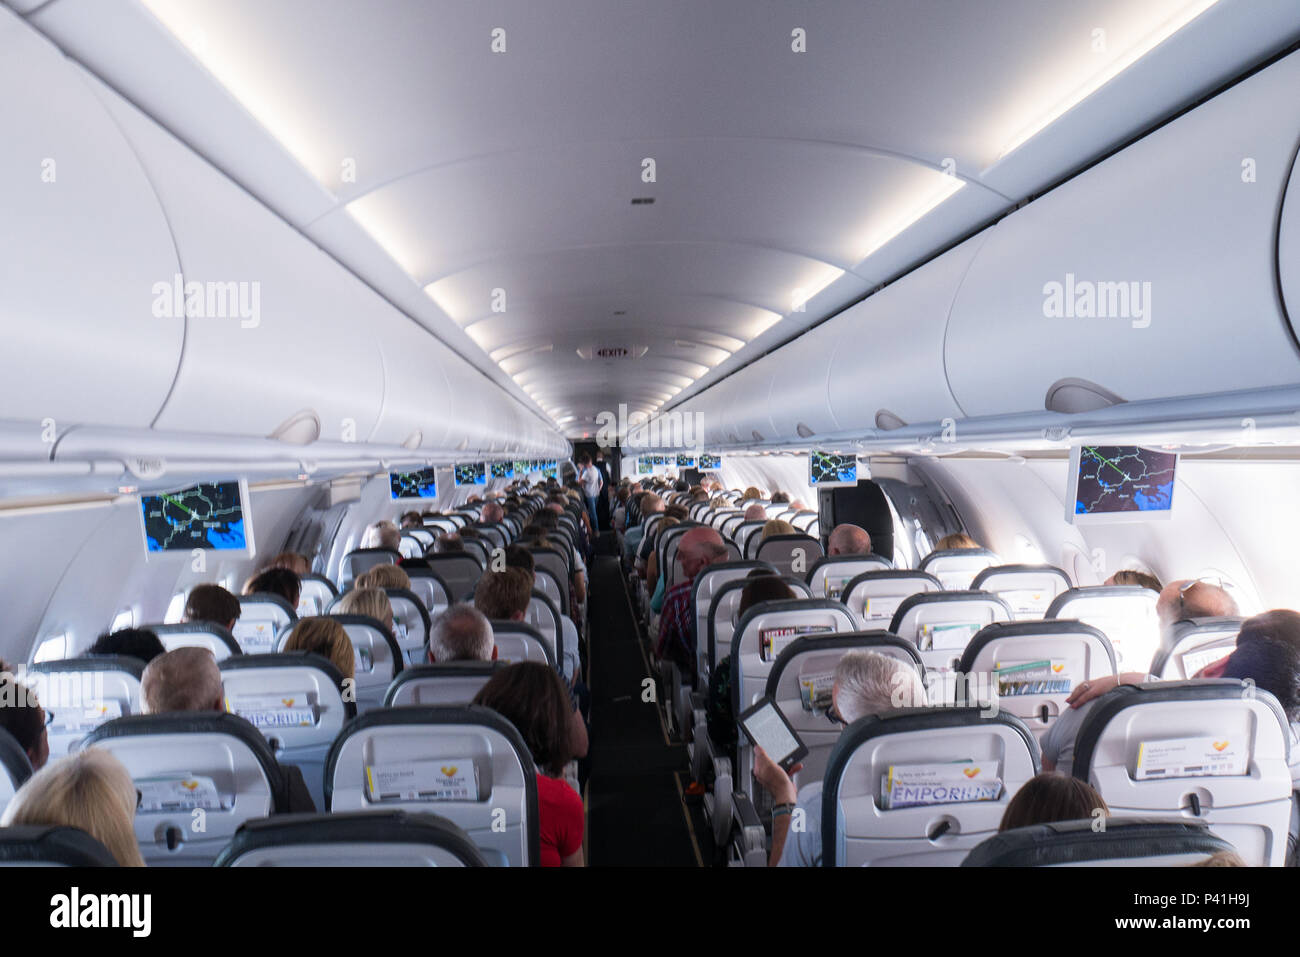 Airbus A321 Interior Stock Photo: 209018590 - Alamy